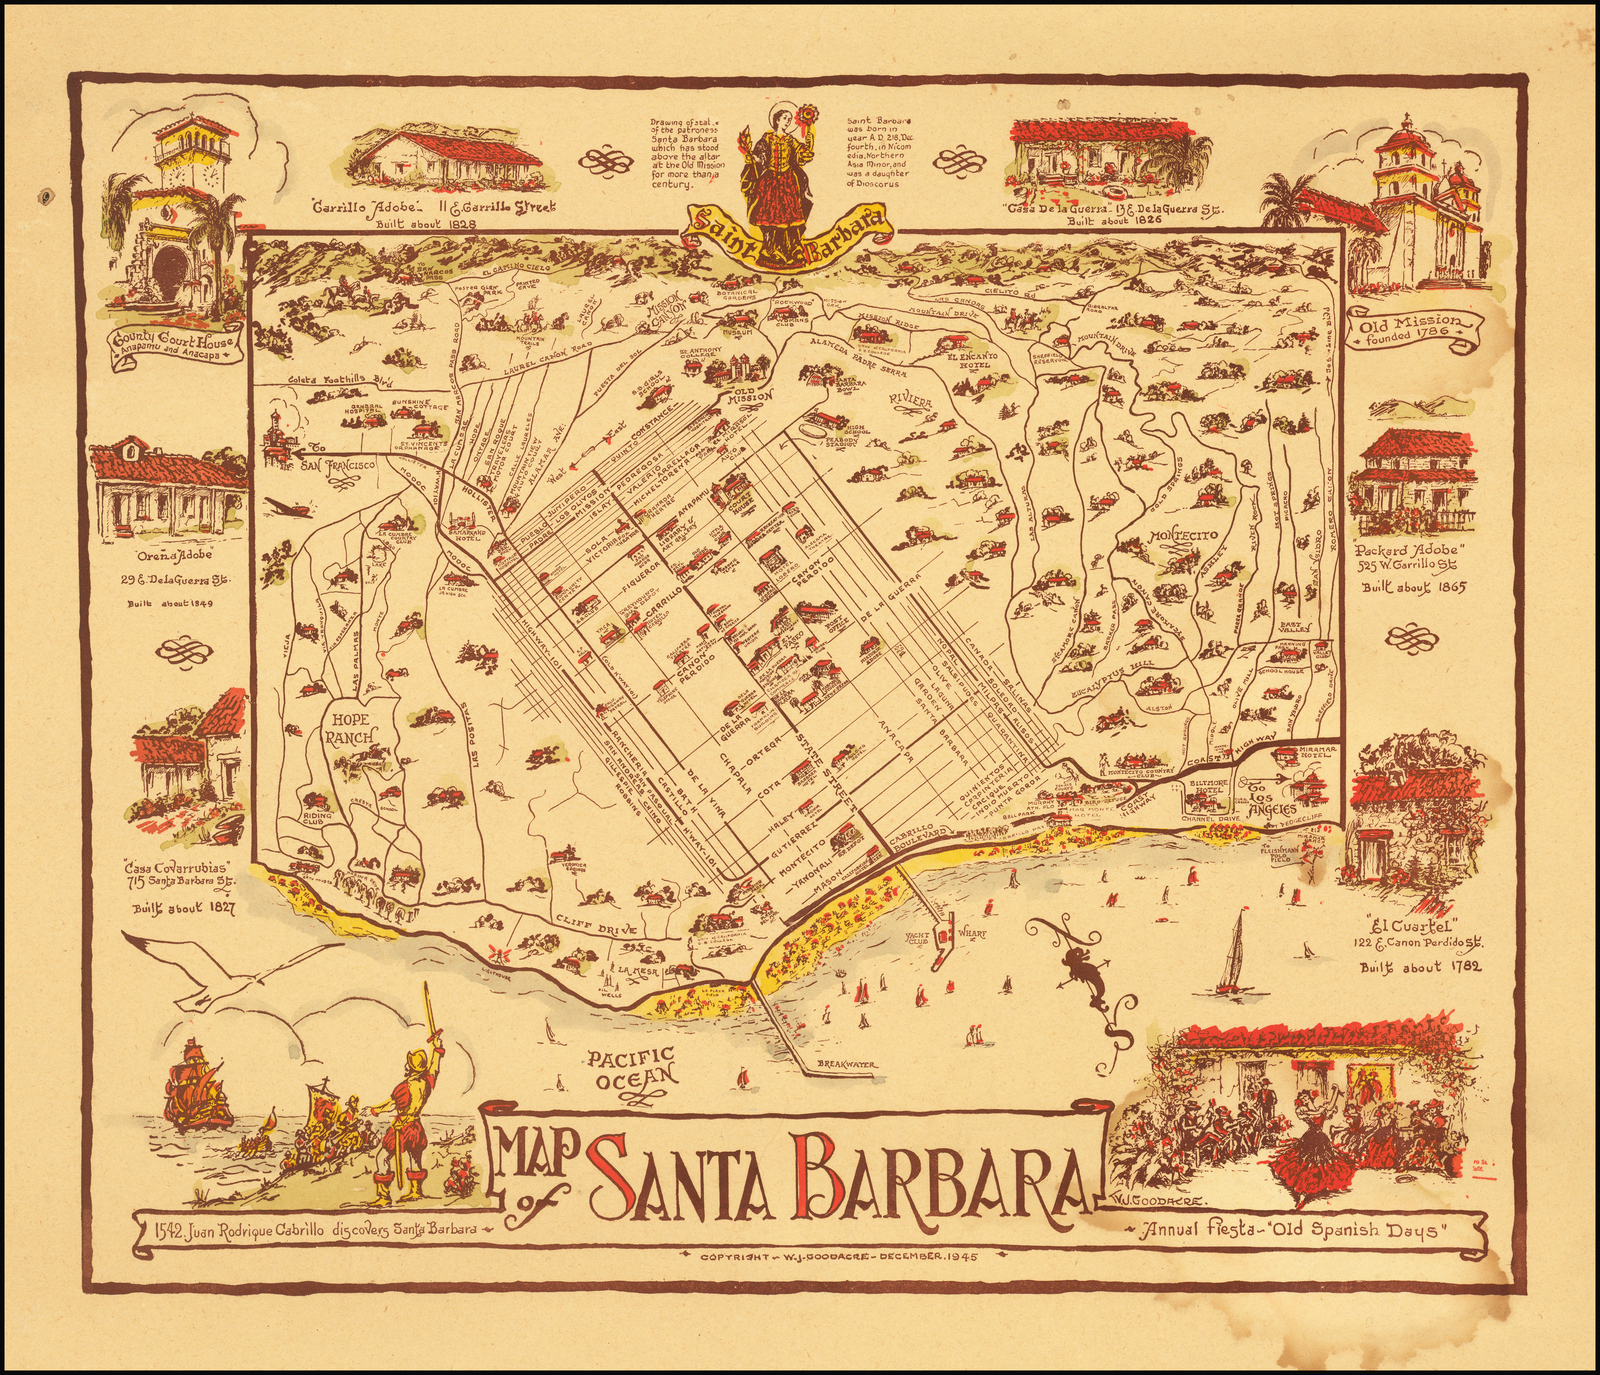 Map of Santa Barbara - Barry Lawrence Ruderman Antique Maps Inc. Santa Barbara State Street Map on wichita state street map, oregon state street map, ohio state street map, sb street map, washington state street map, new york state street map, chicago state street map, boston state street map, madison state street map, california county map,